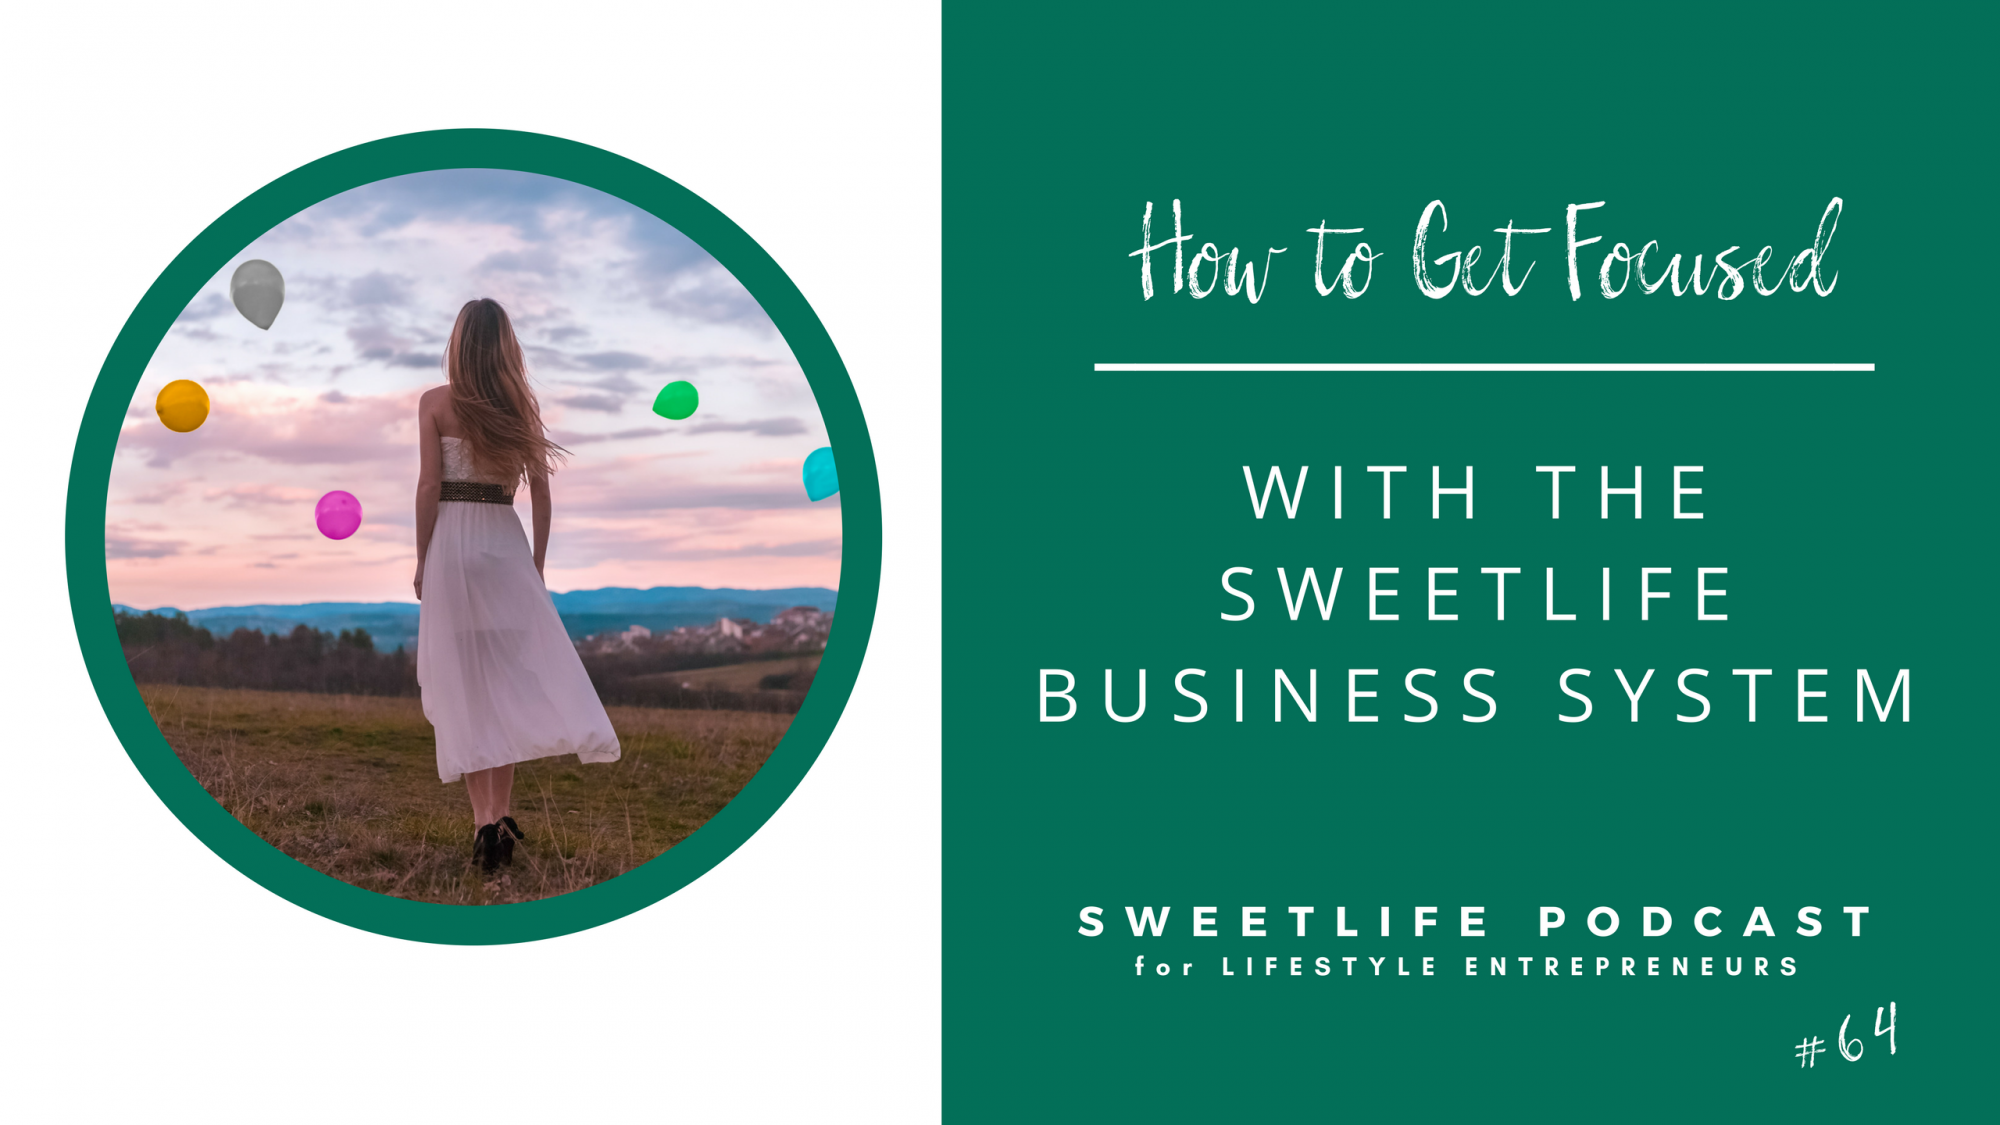 Episode 64: How to Get Focused with the SweetLife Business System